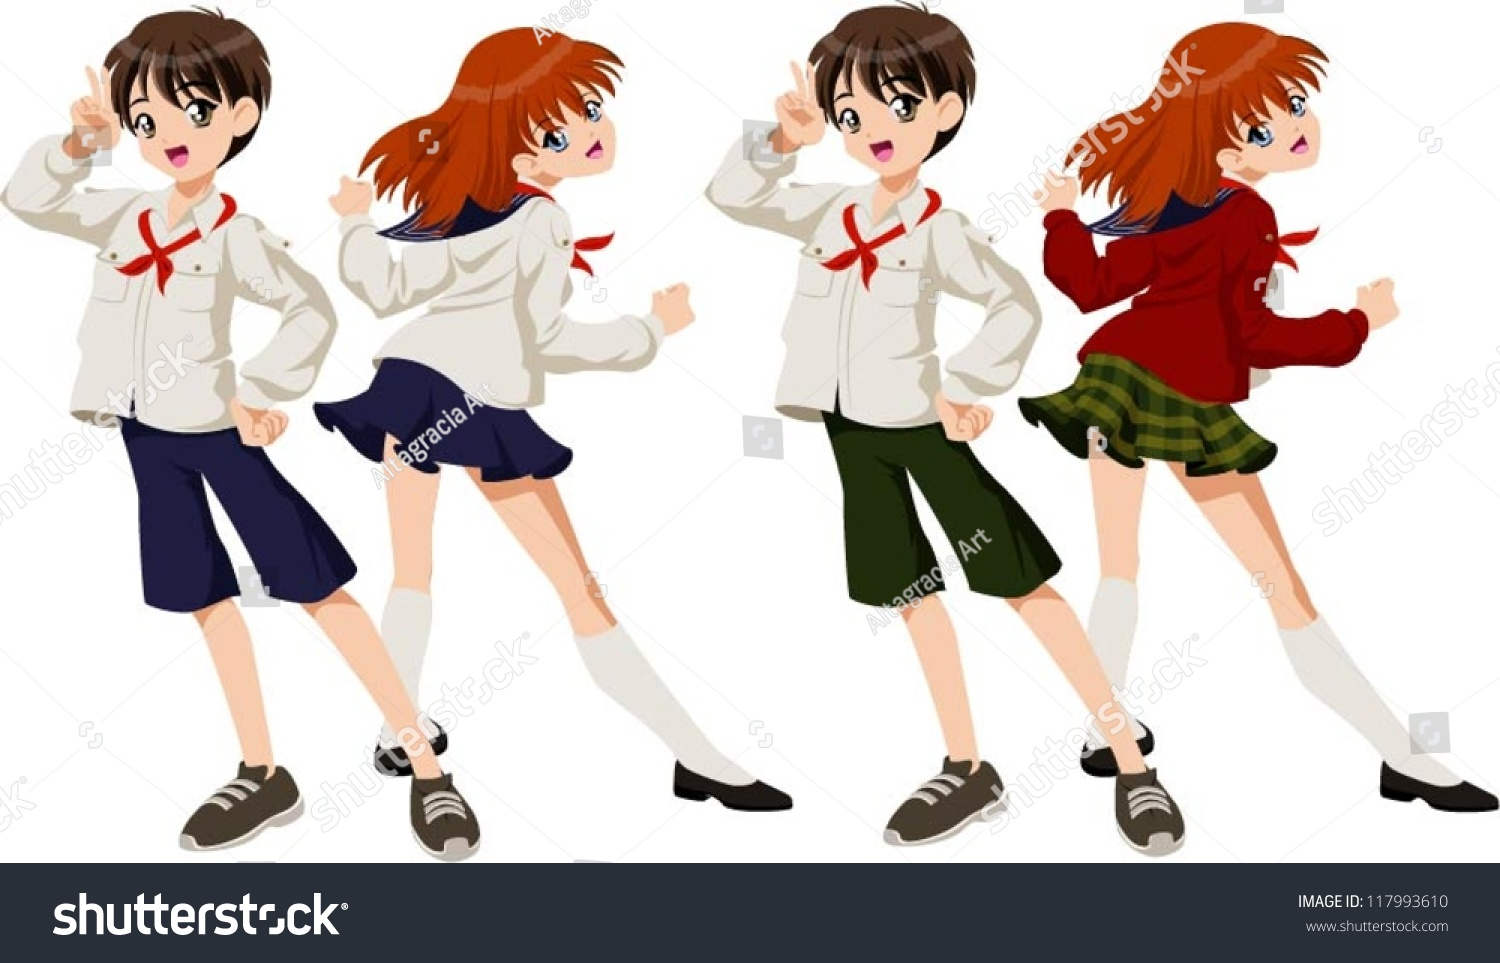 Vector illustration of a school boy and a school girl wearing japanese school uniforms in two